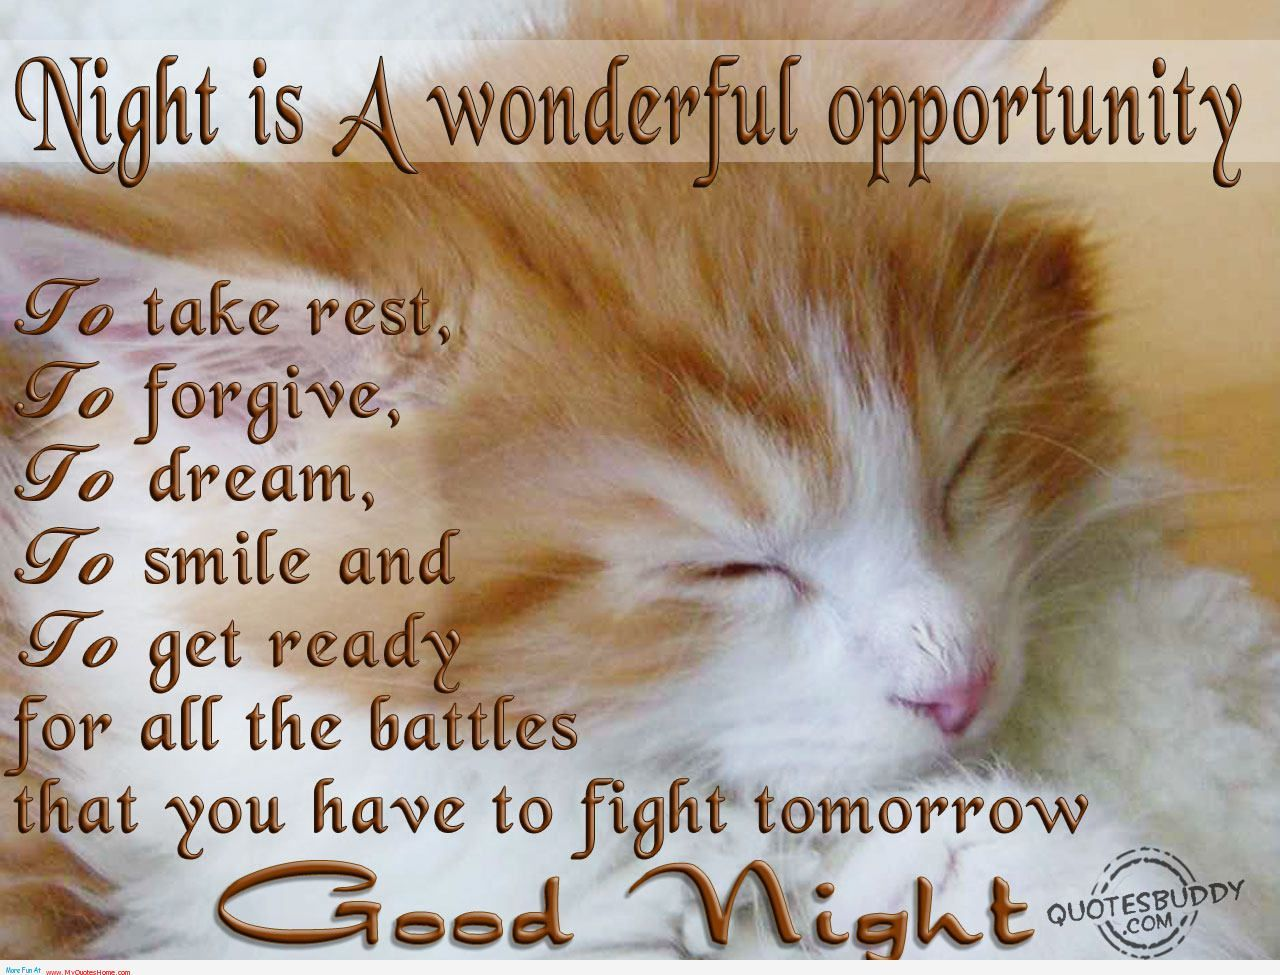 Night Lovers My Quotes Home Quotes About Inspiration Funny Good Night Images Good Night Friends Good Night Quotes